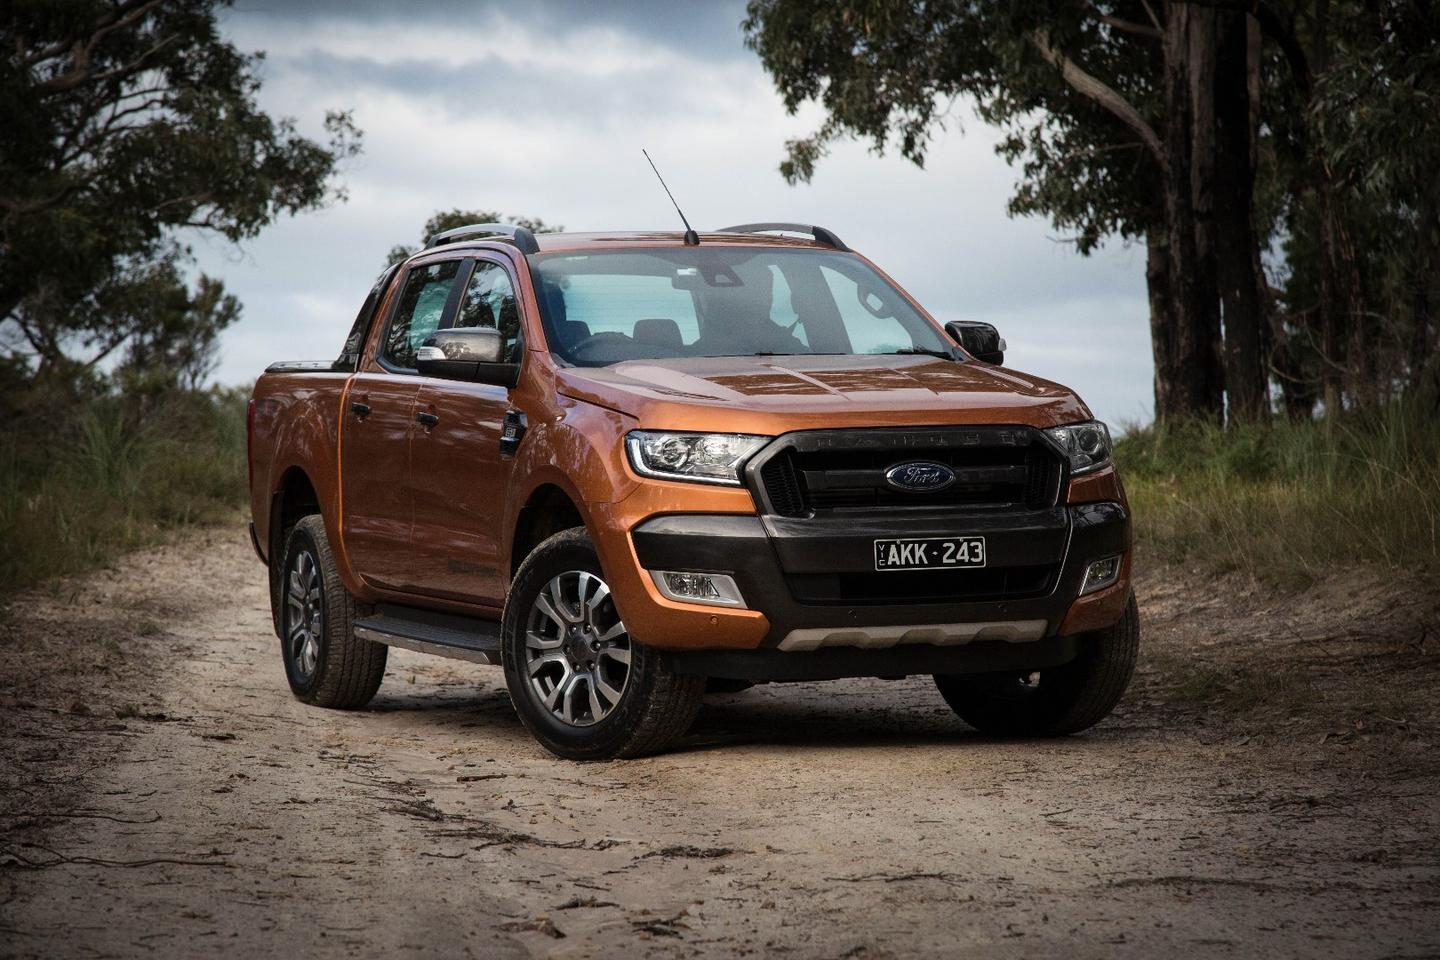 The Ford Ranger Wildtrak comes in a special shade of Pride Orange